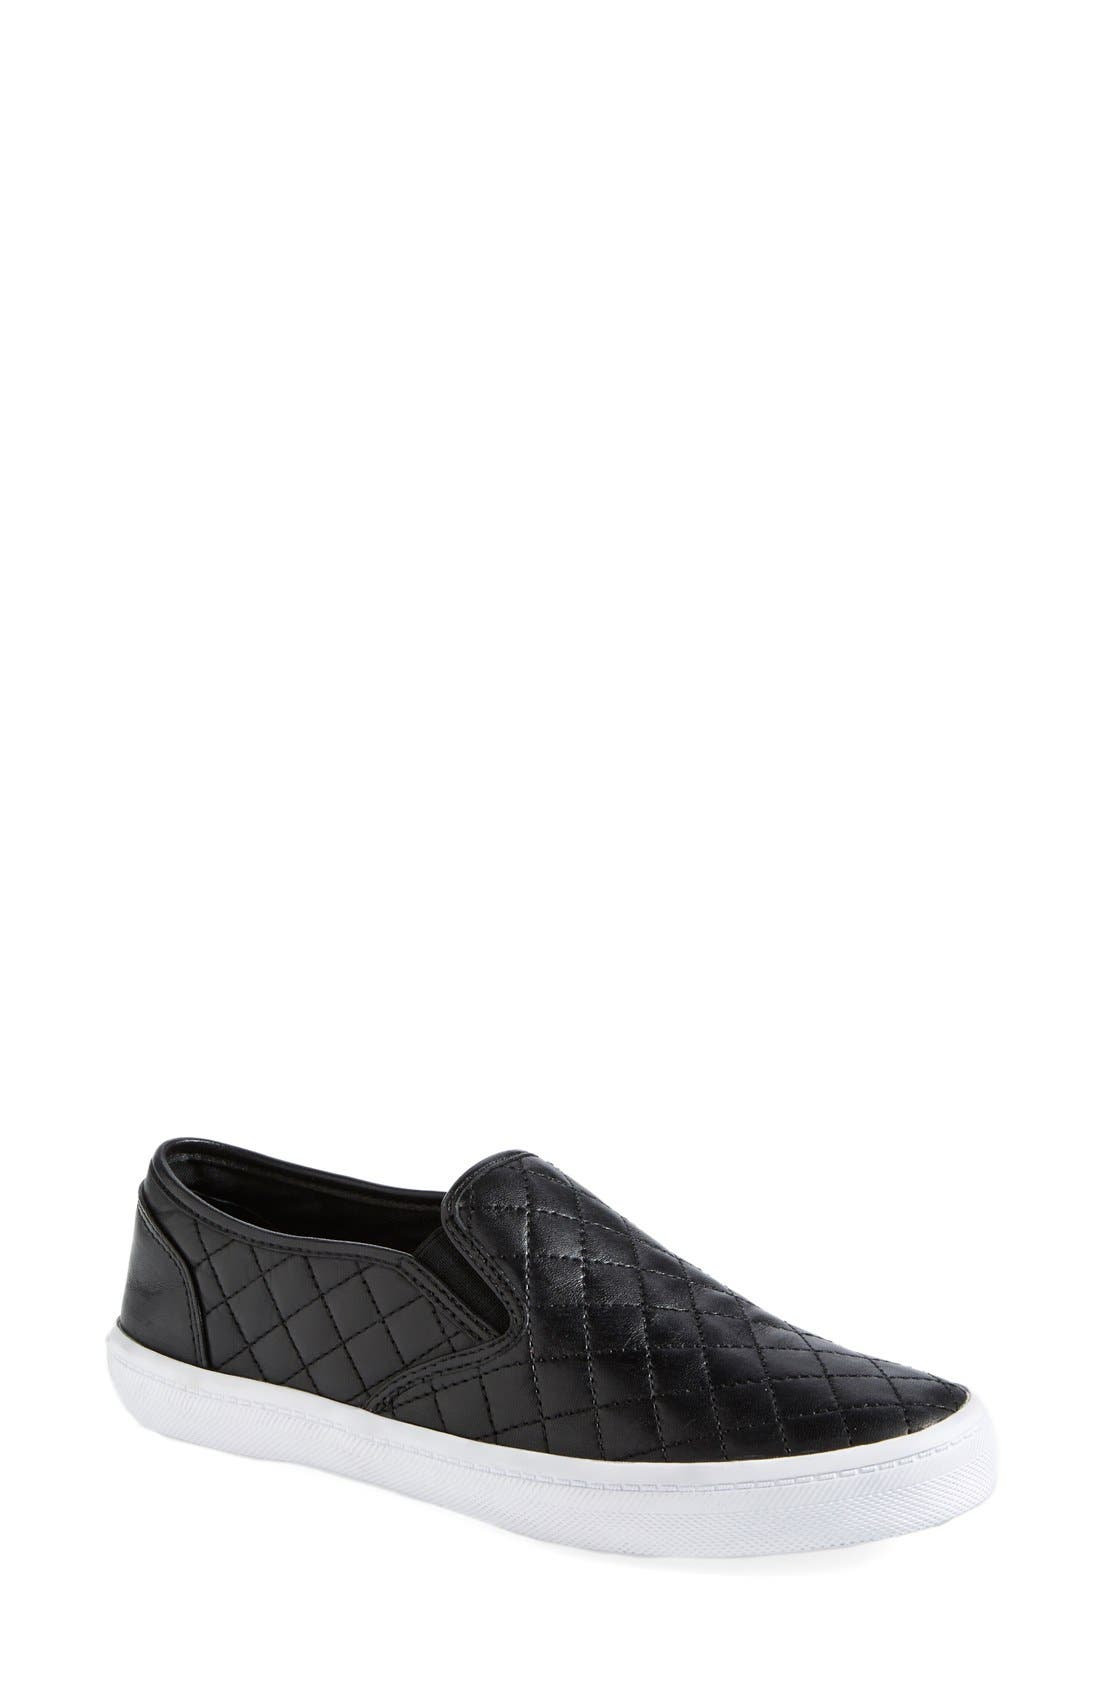 Main Image - Rebecca Minkoff 'Sal' Slip-On Leather Sneaker (Women)